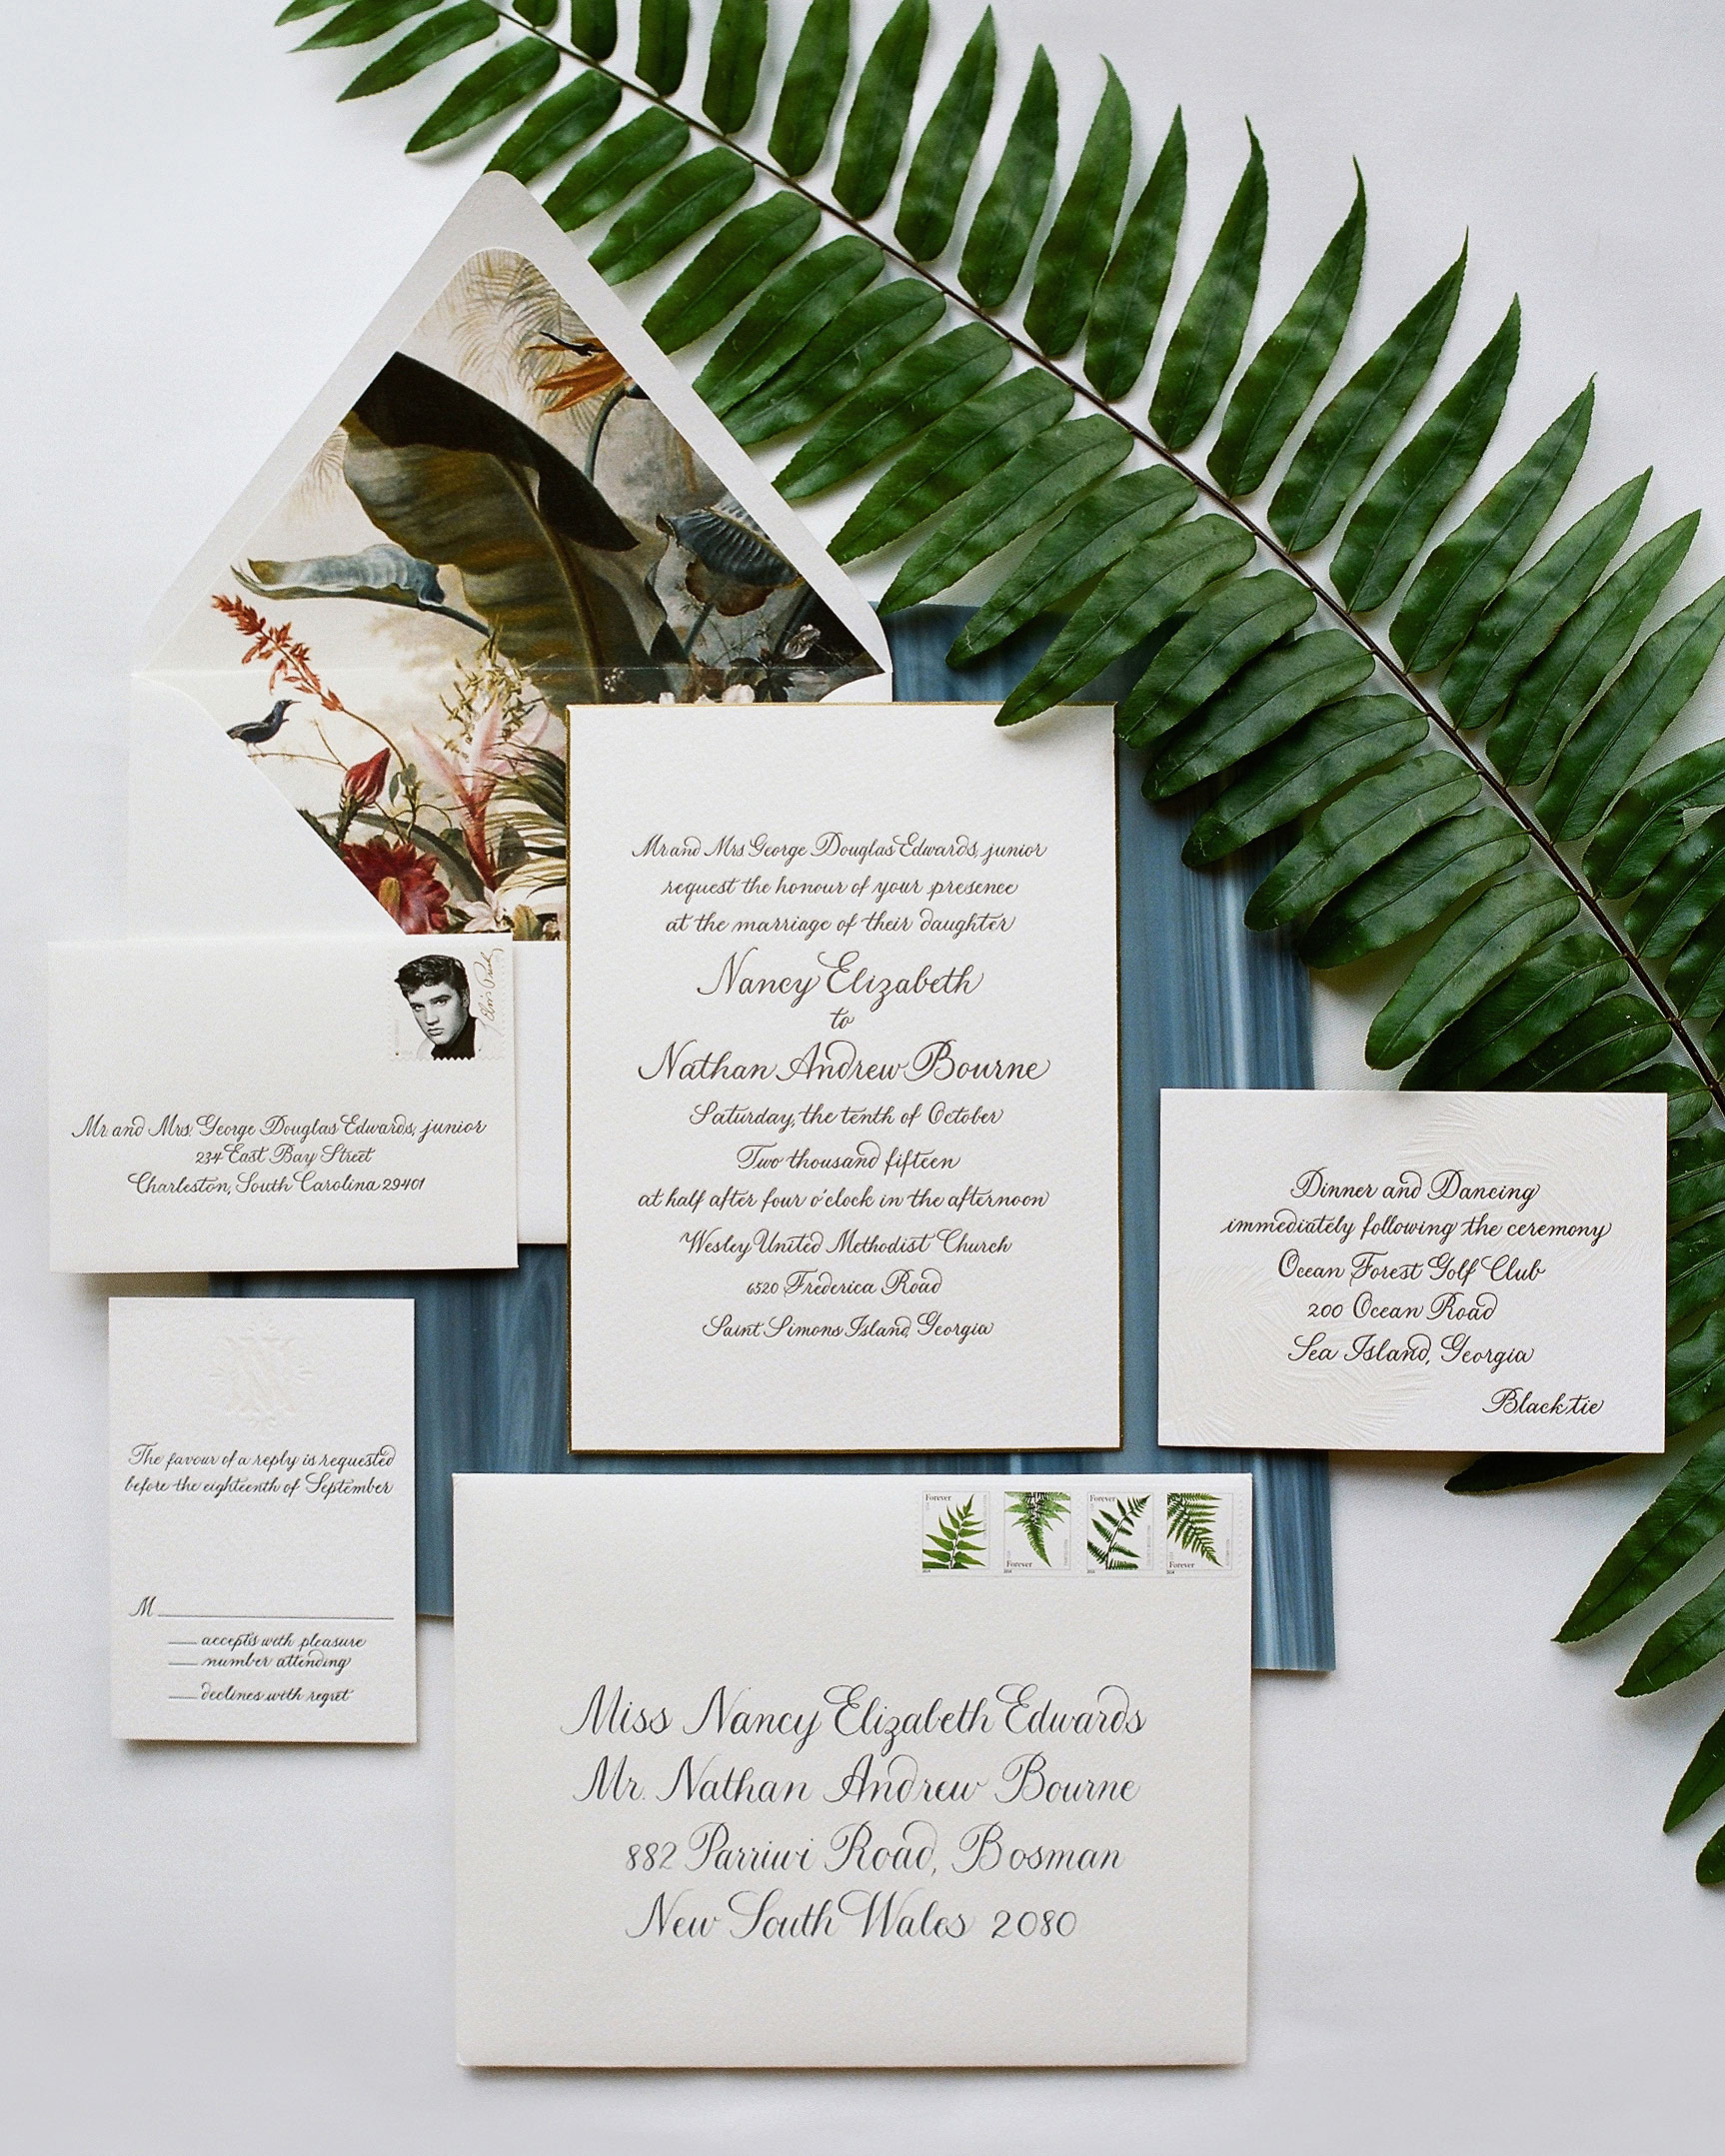 nancy-nathan-wedding-invitation-0625-6141569-0816.jpg